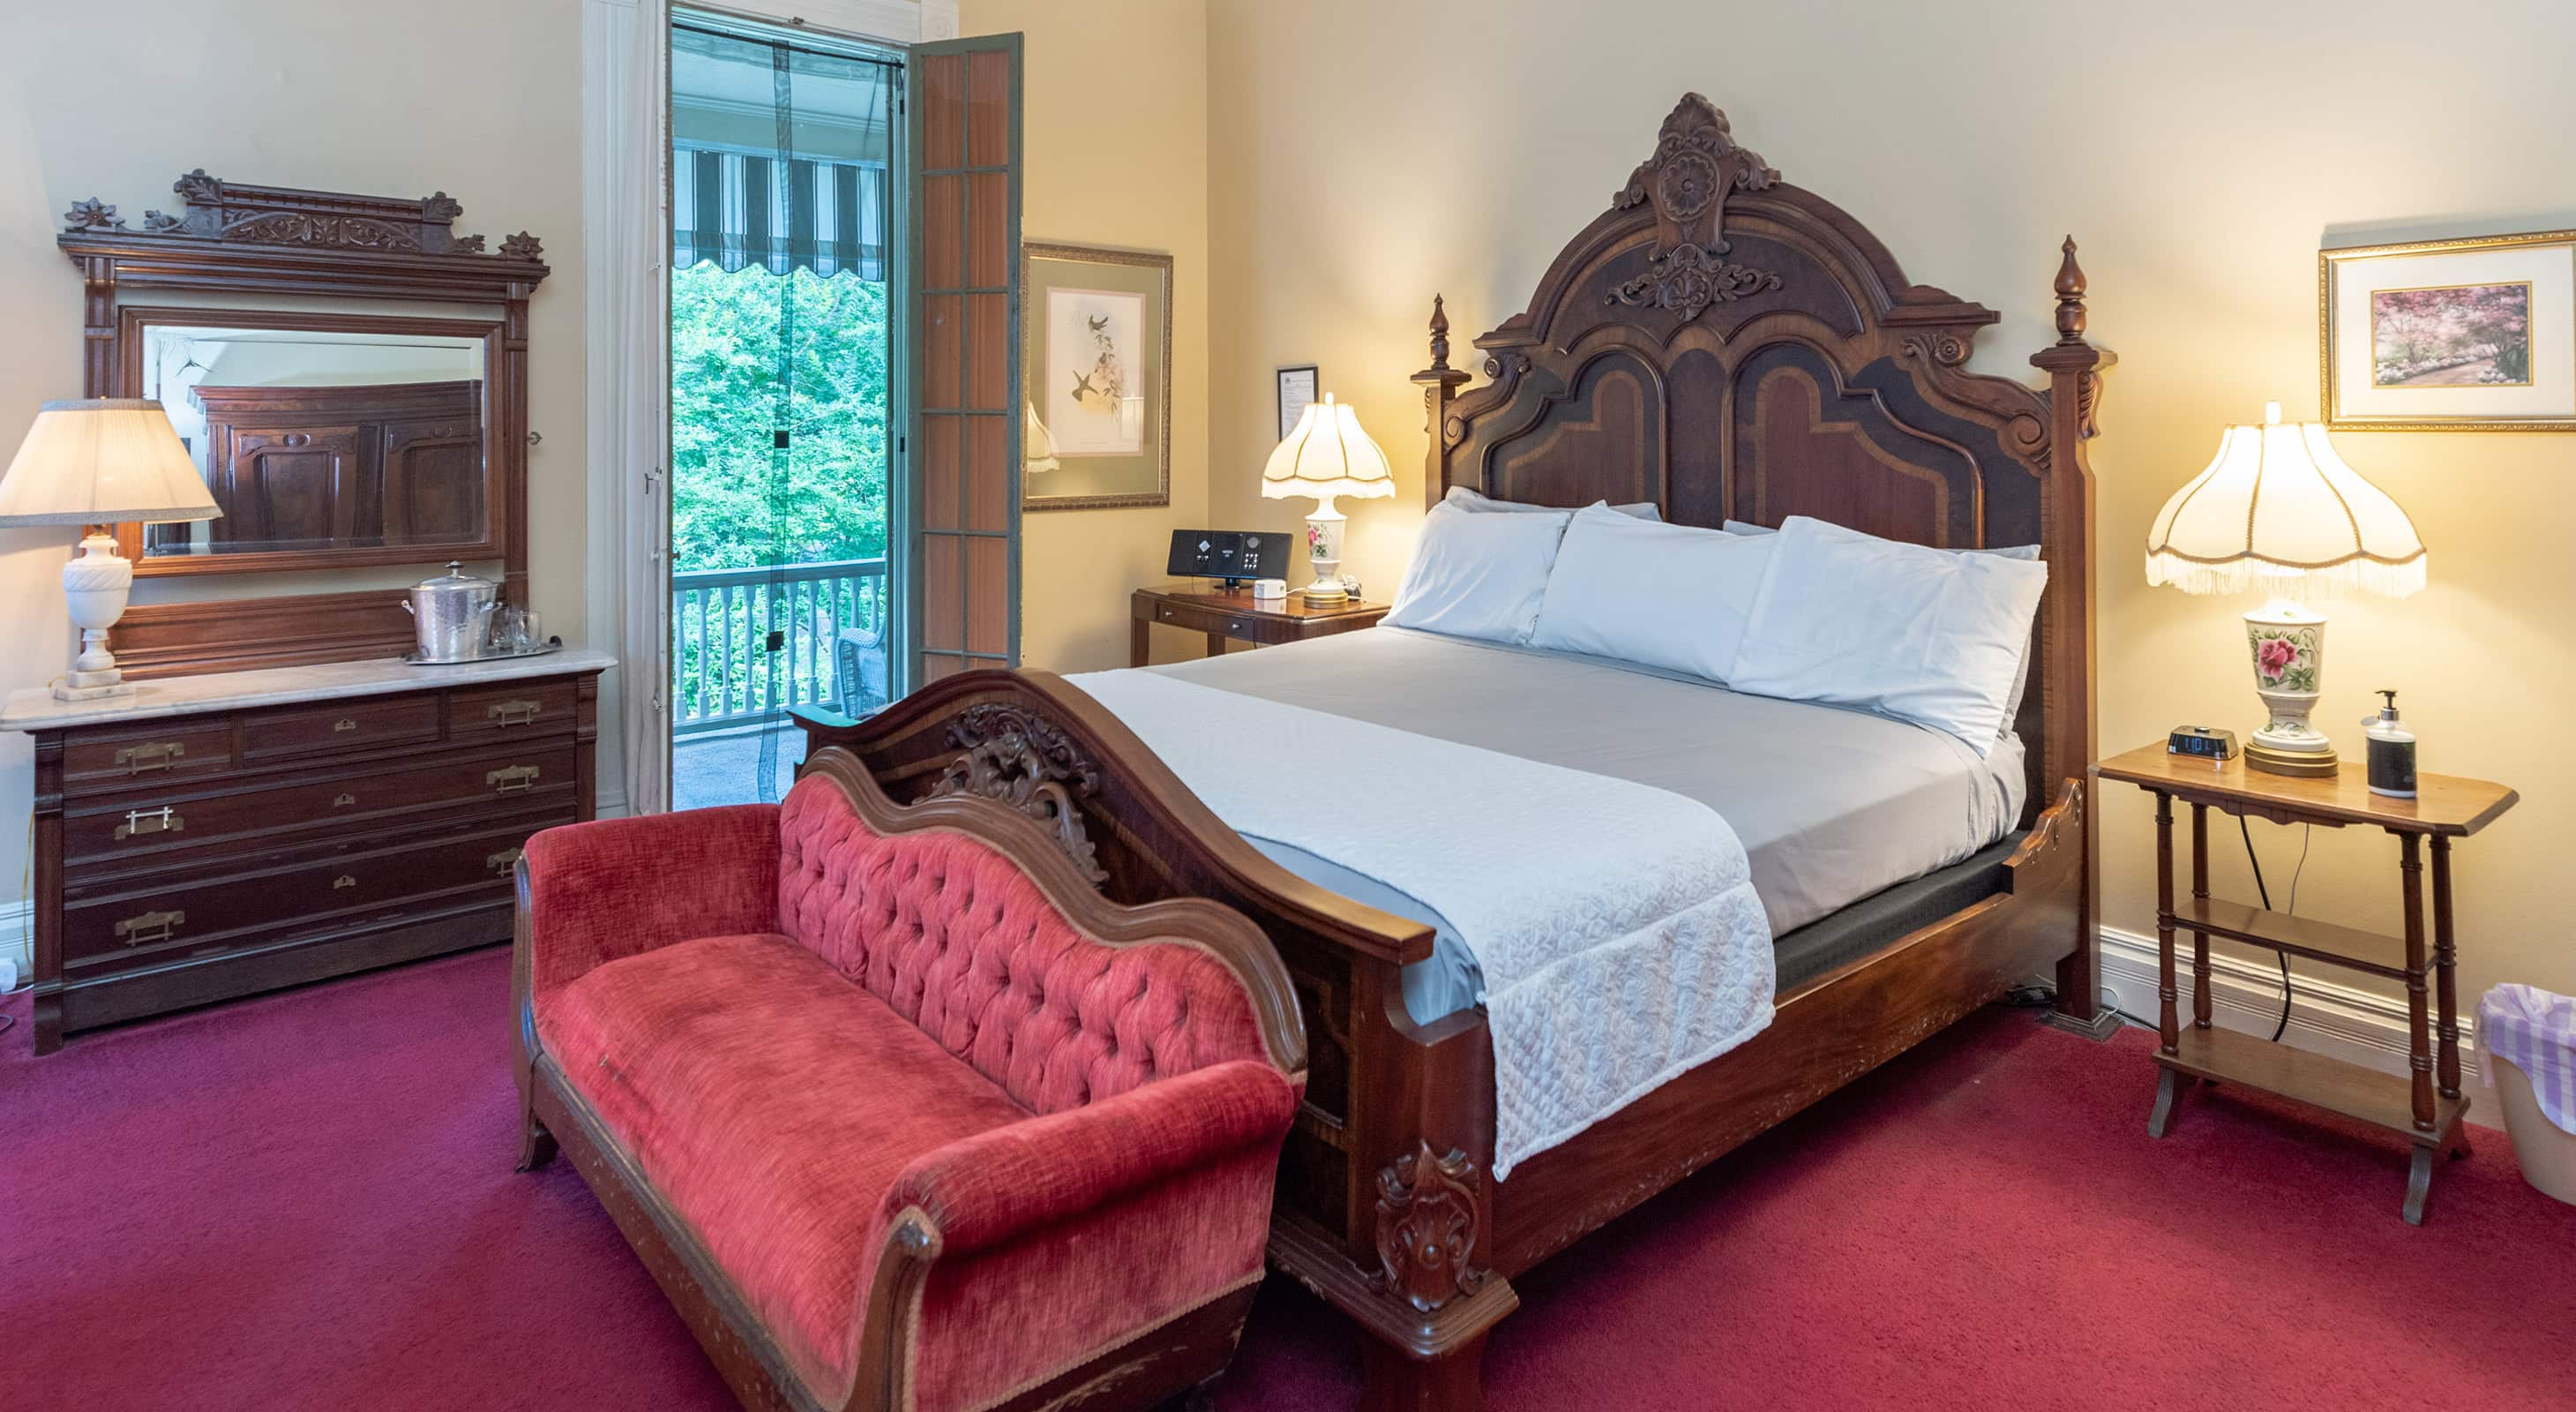 Gallery Suite king bed